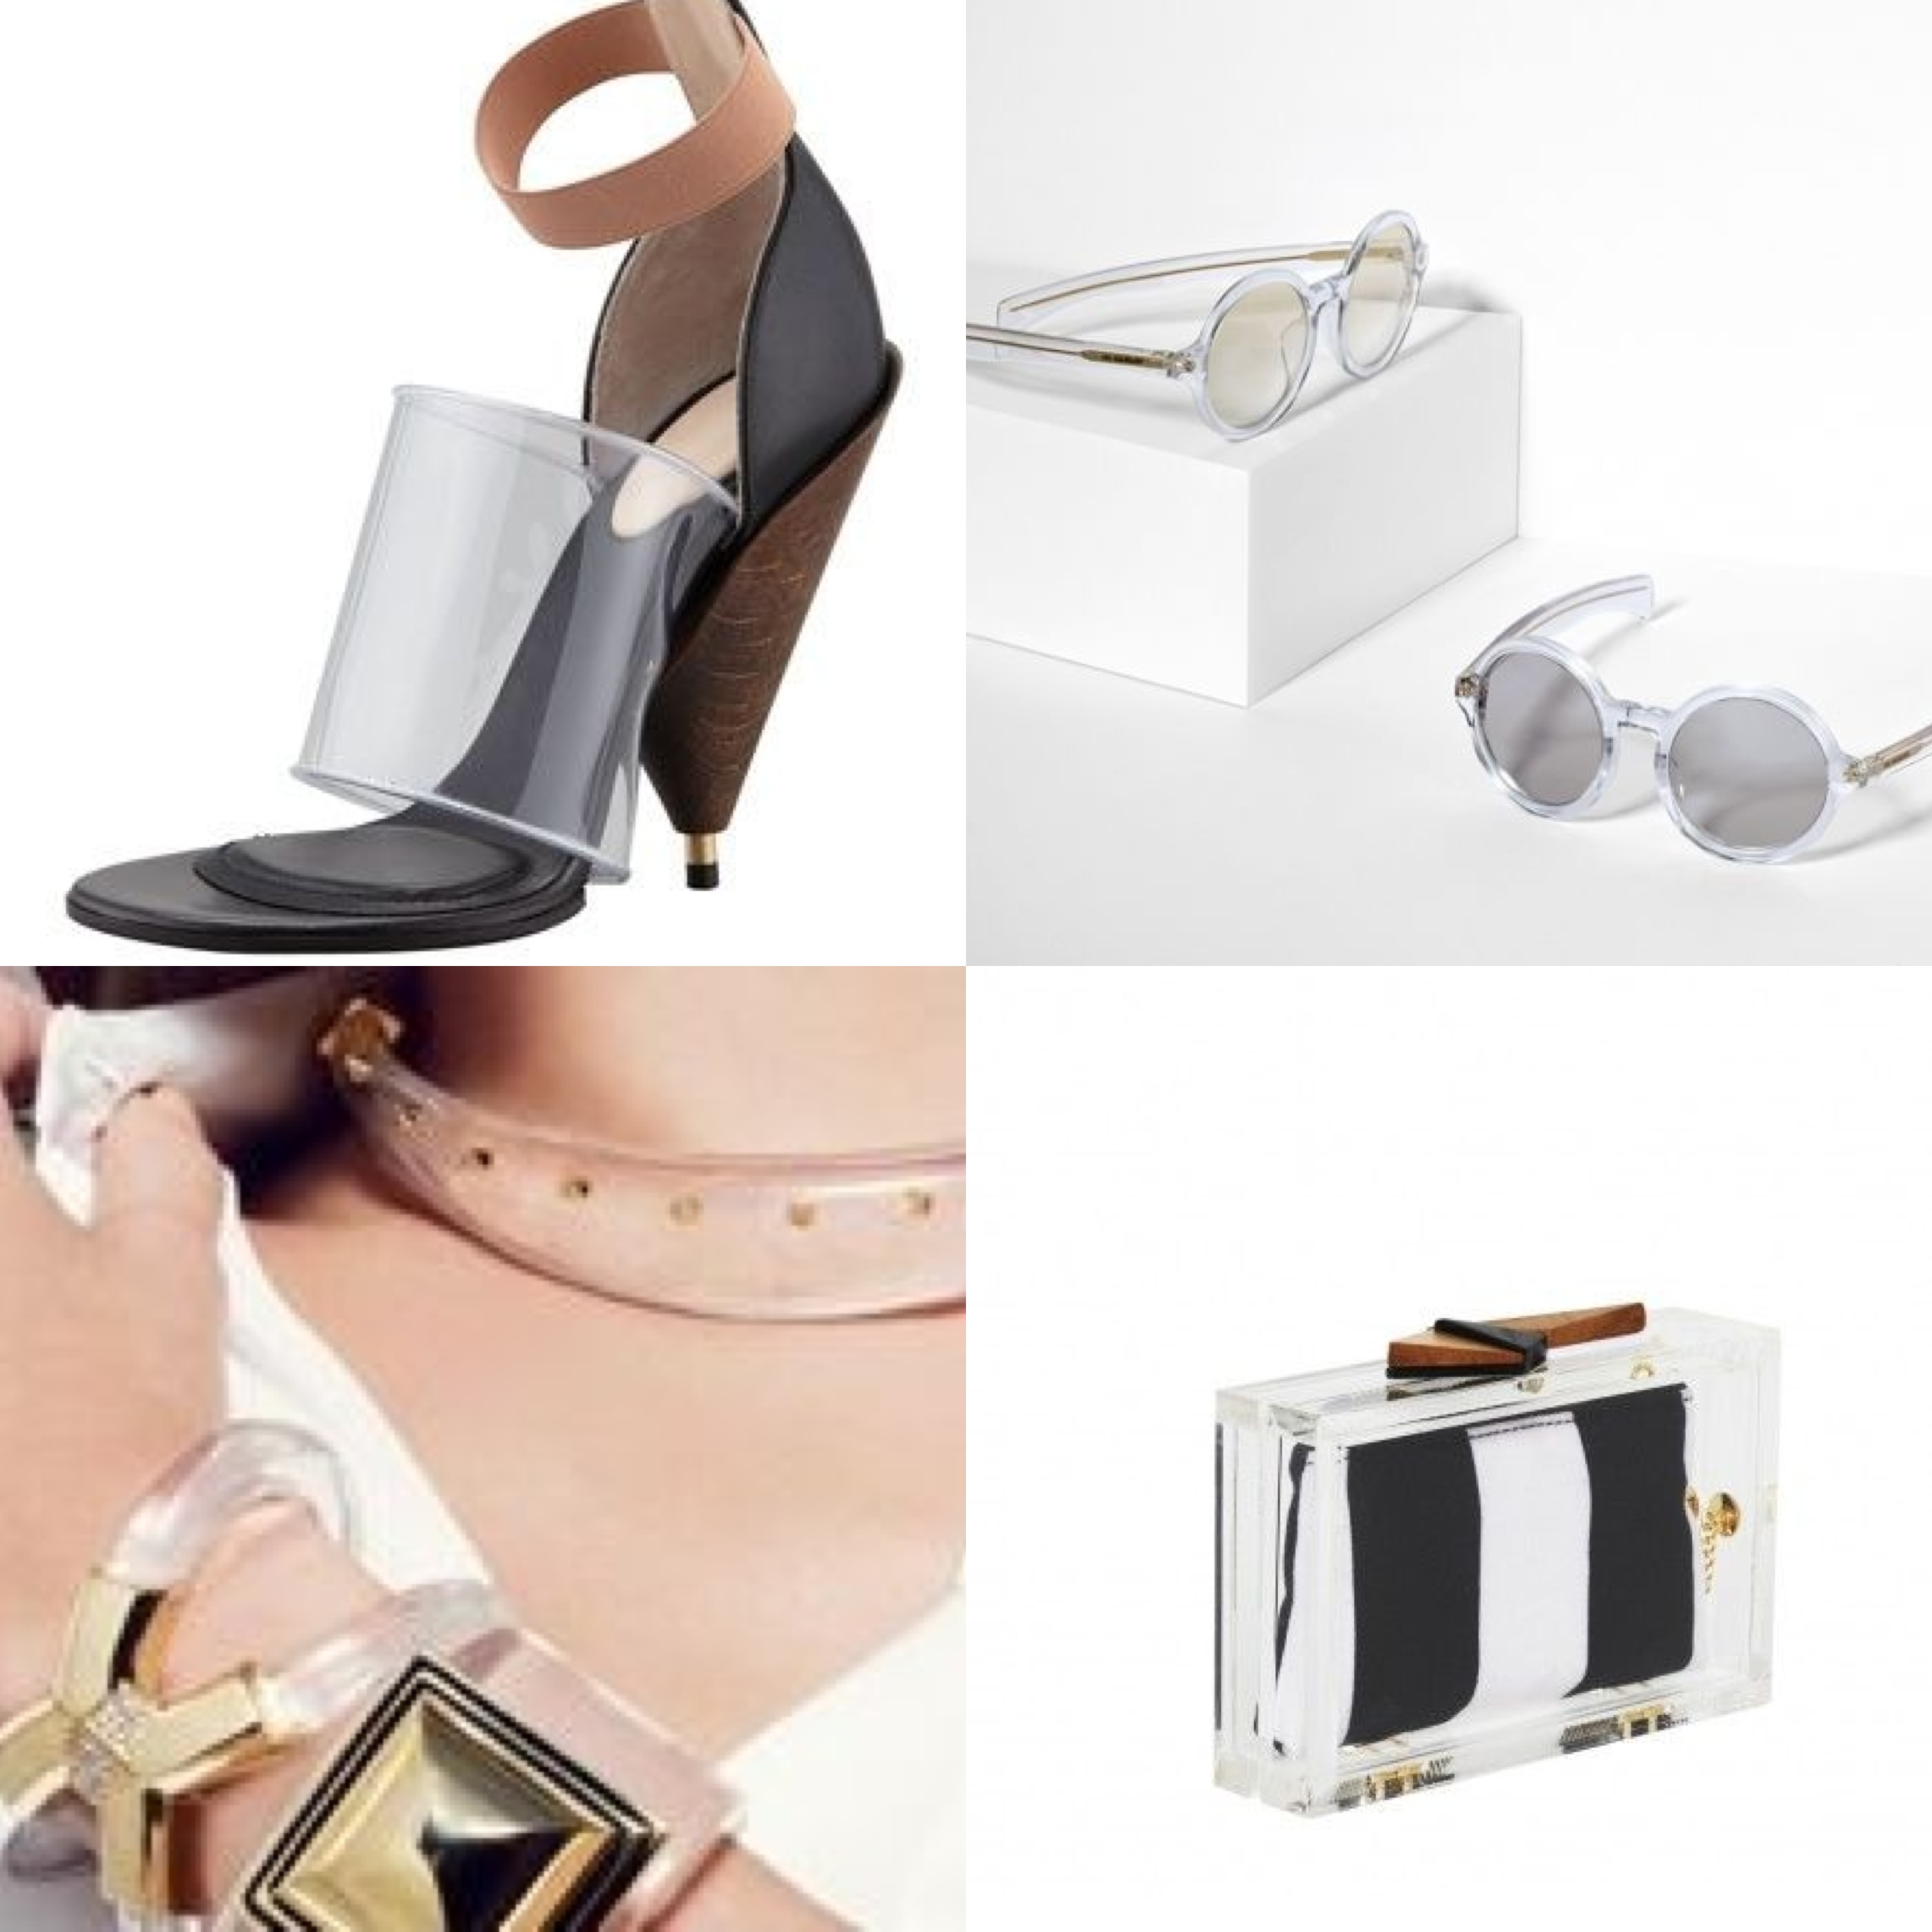 Wear you Would Lucite accessories? images